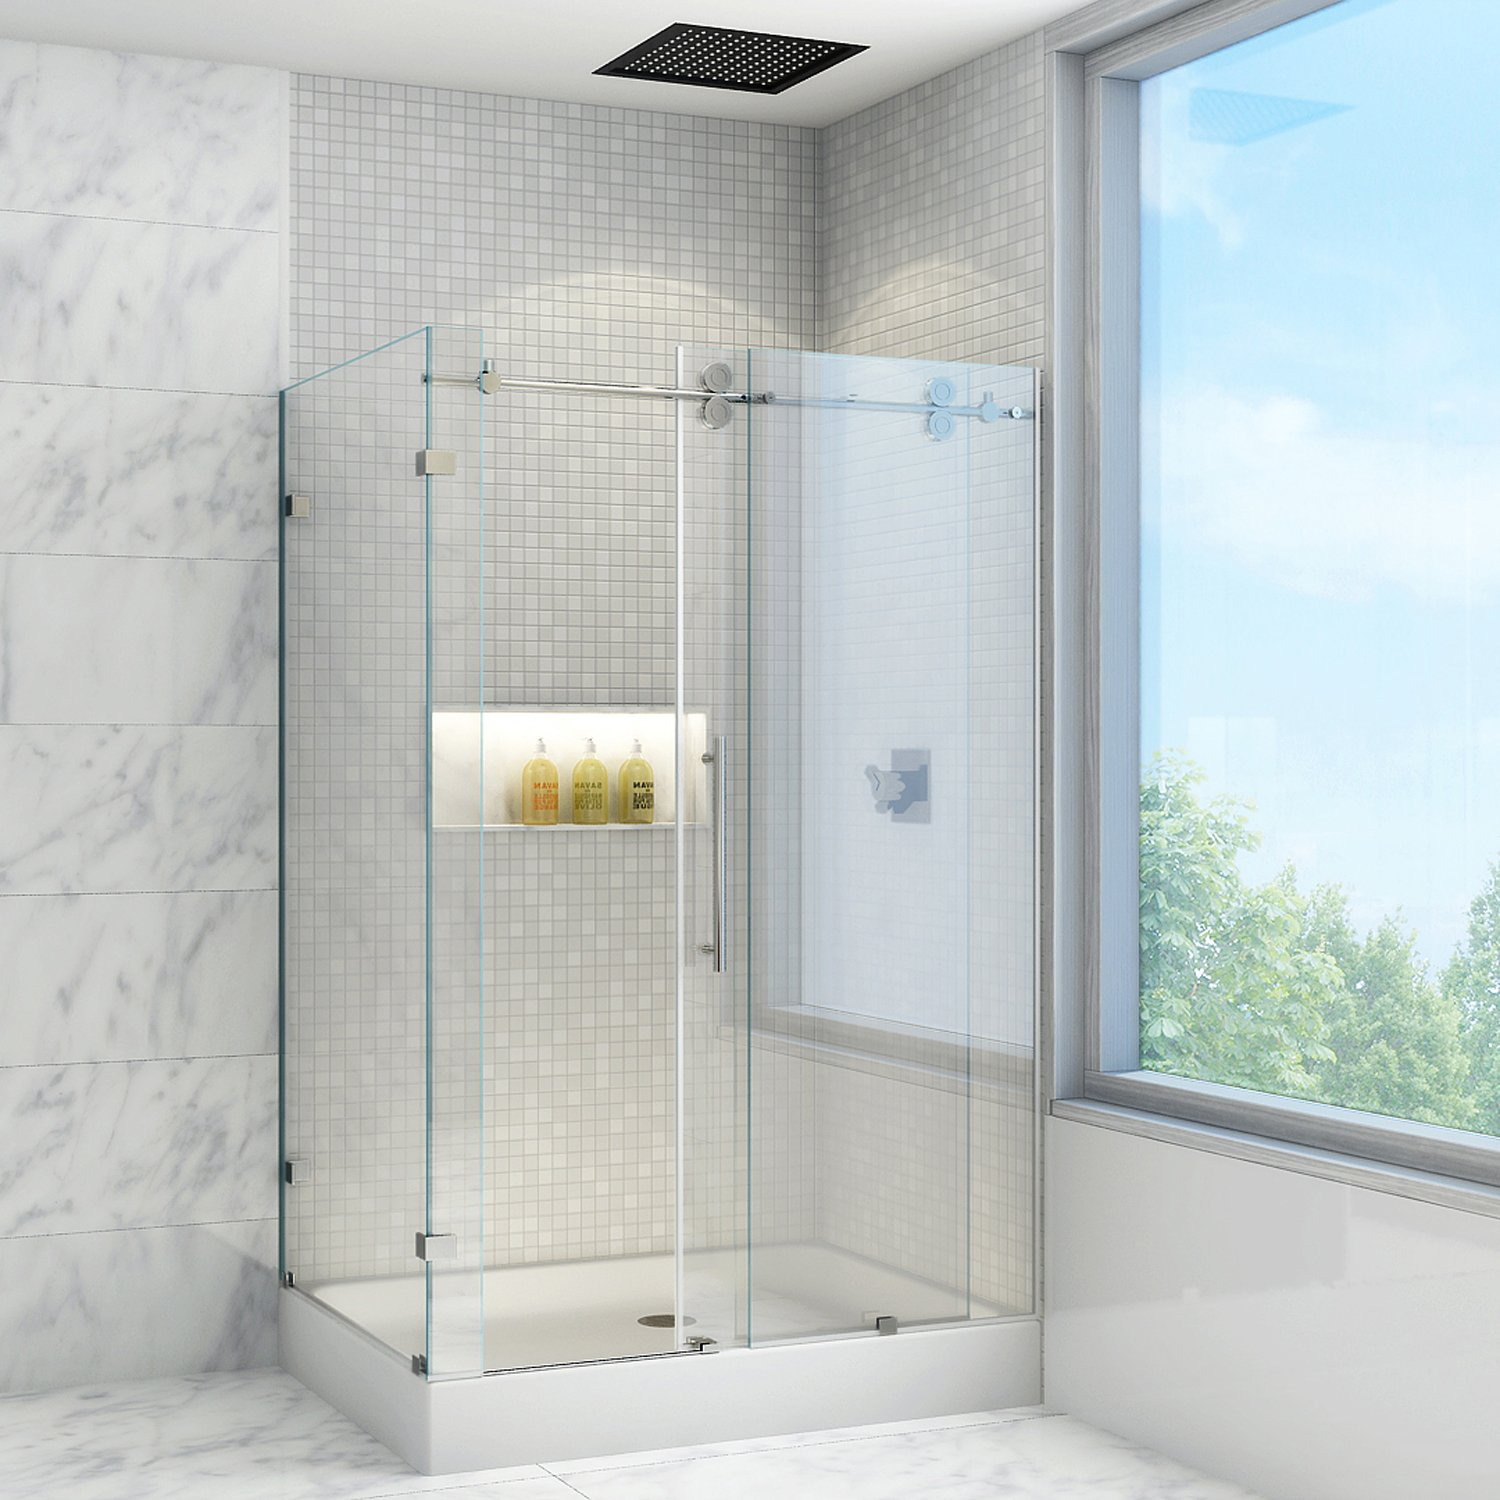 Vigo winslow 36 x 48 in frameless sliding shower enclosure with vigo winslow 36 x 48 in frameless sliding shower enclosure with 375 in clear glass and stainless steel hardware with right base included one piece eventshaper